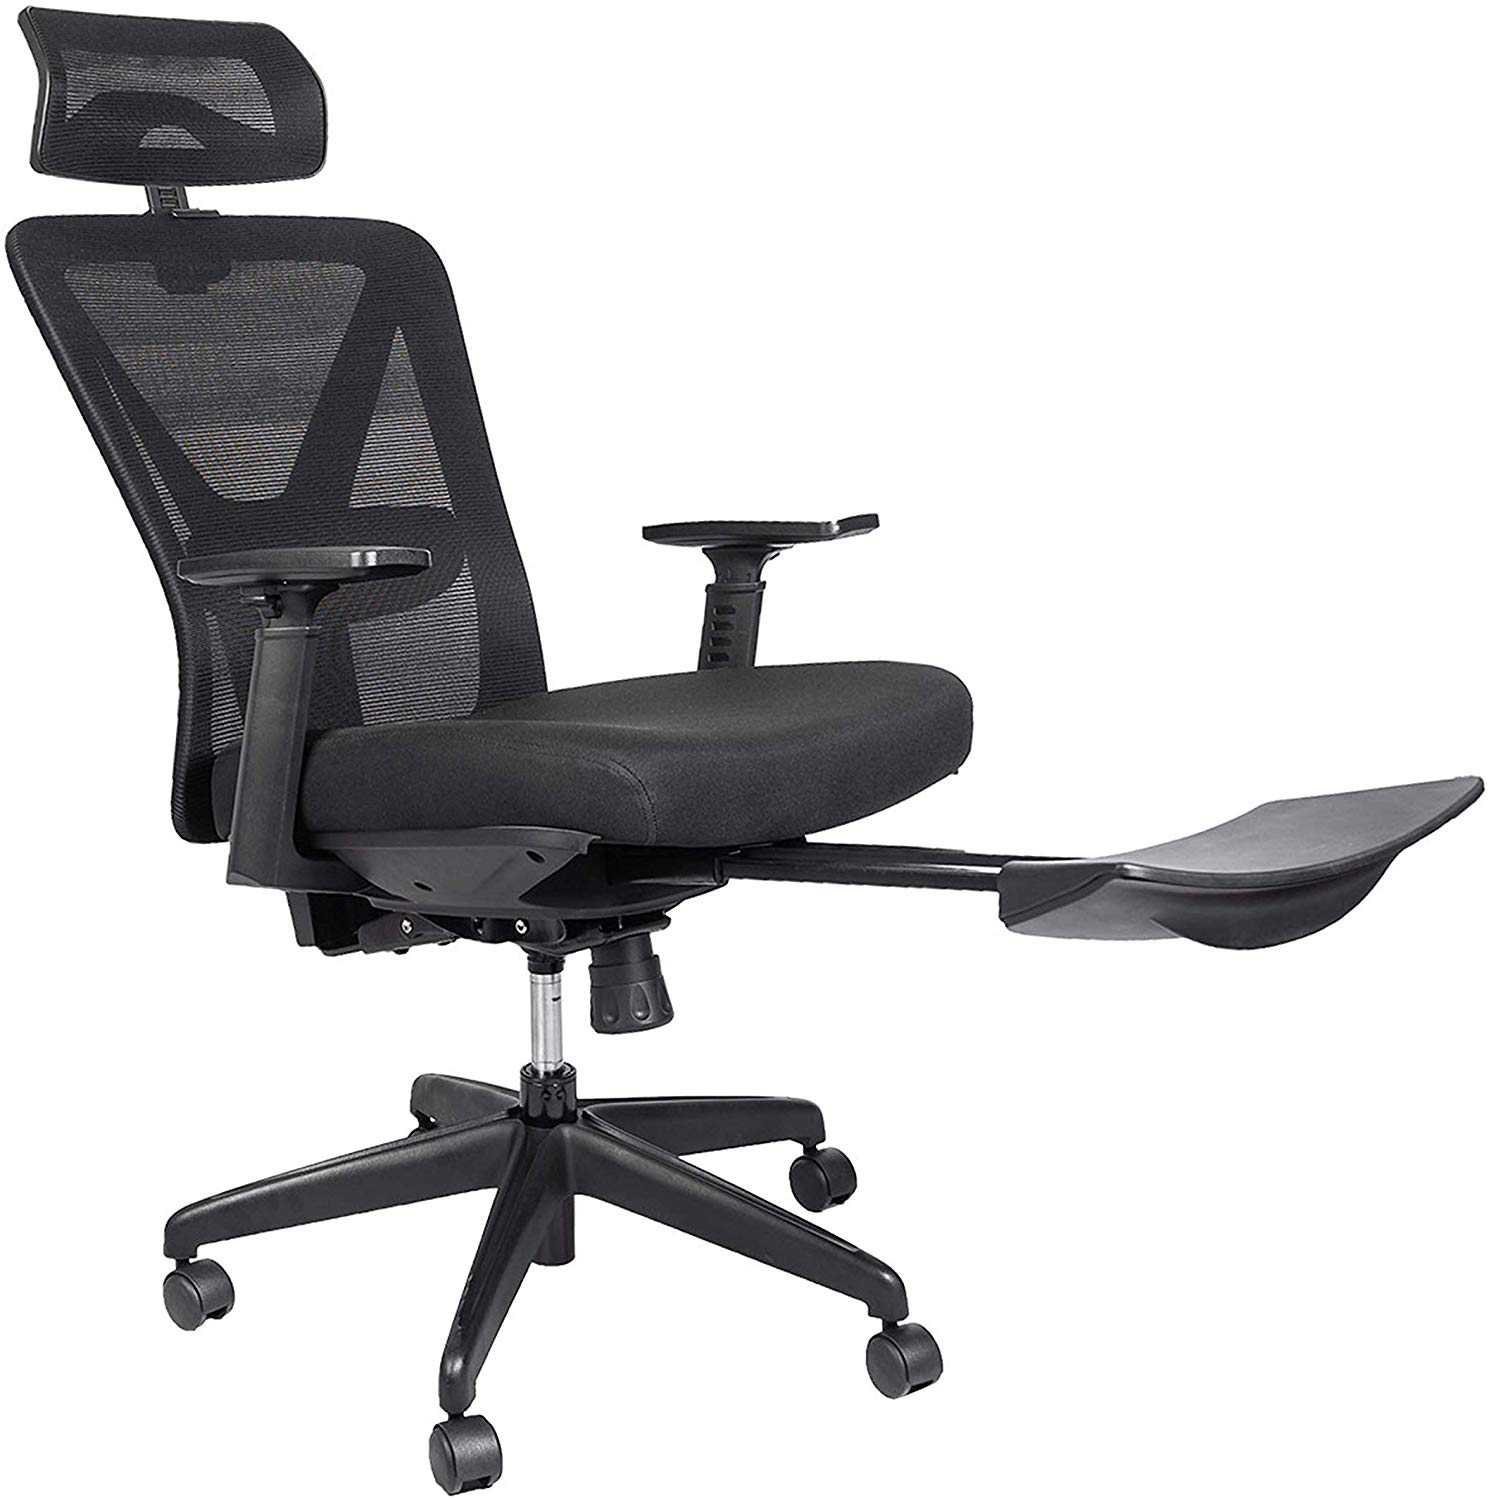 Bonzy Home Reclining Office Chair High Back - 300 LB Capacity Ergonomic Computer Mesh Recliner - Executive Swivel Office Desk Chair - Task Chair with Footrest and Lumbar Support (Black Footrest)